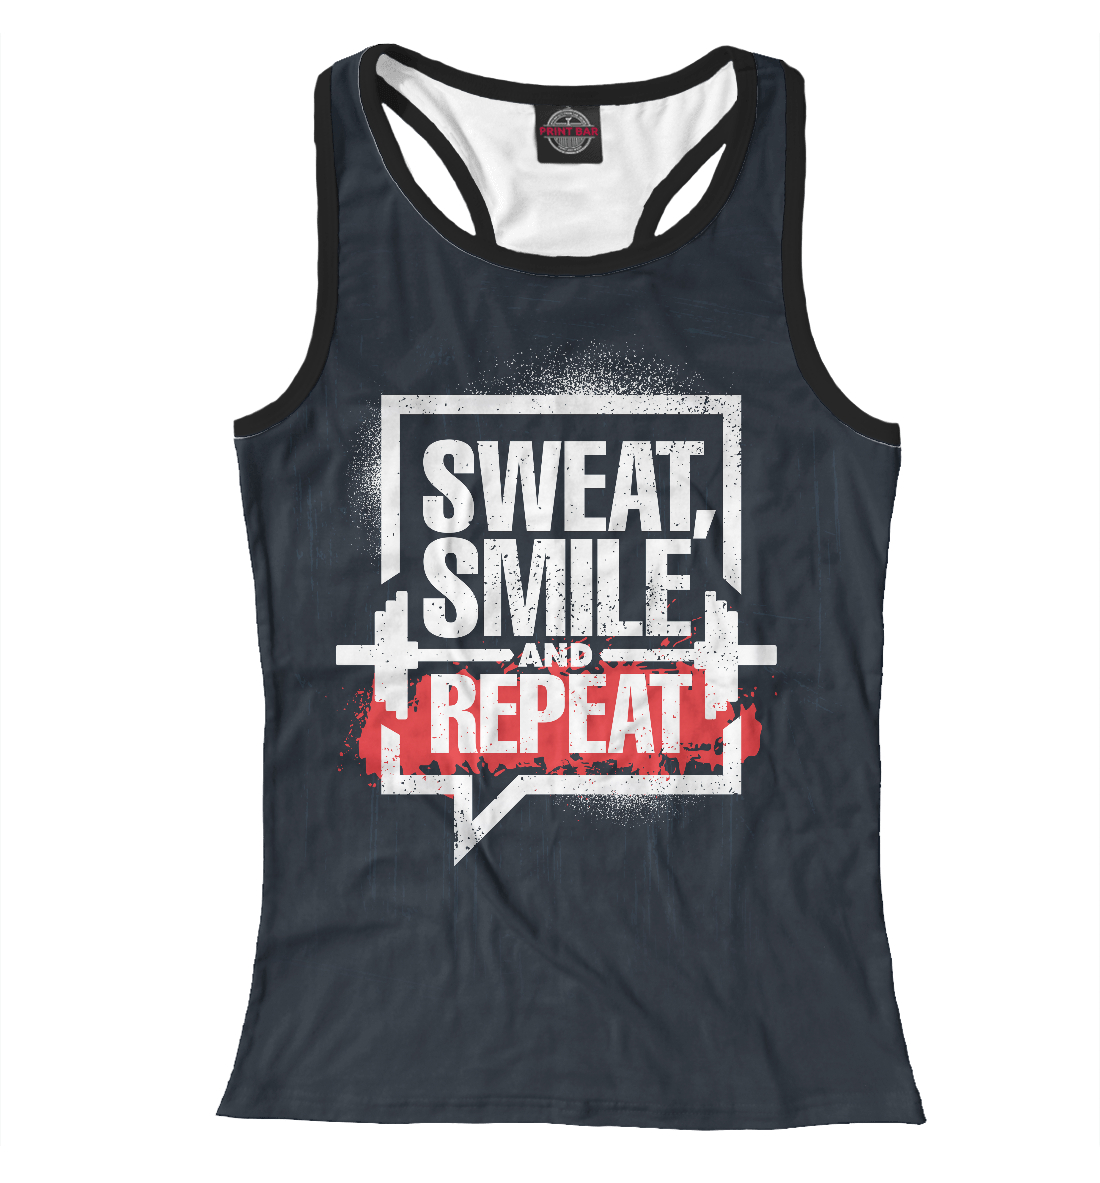 Sweat, smile and repeat.